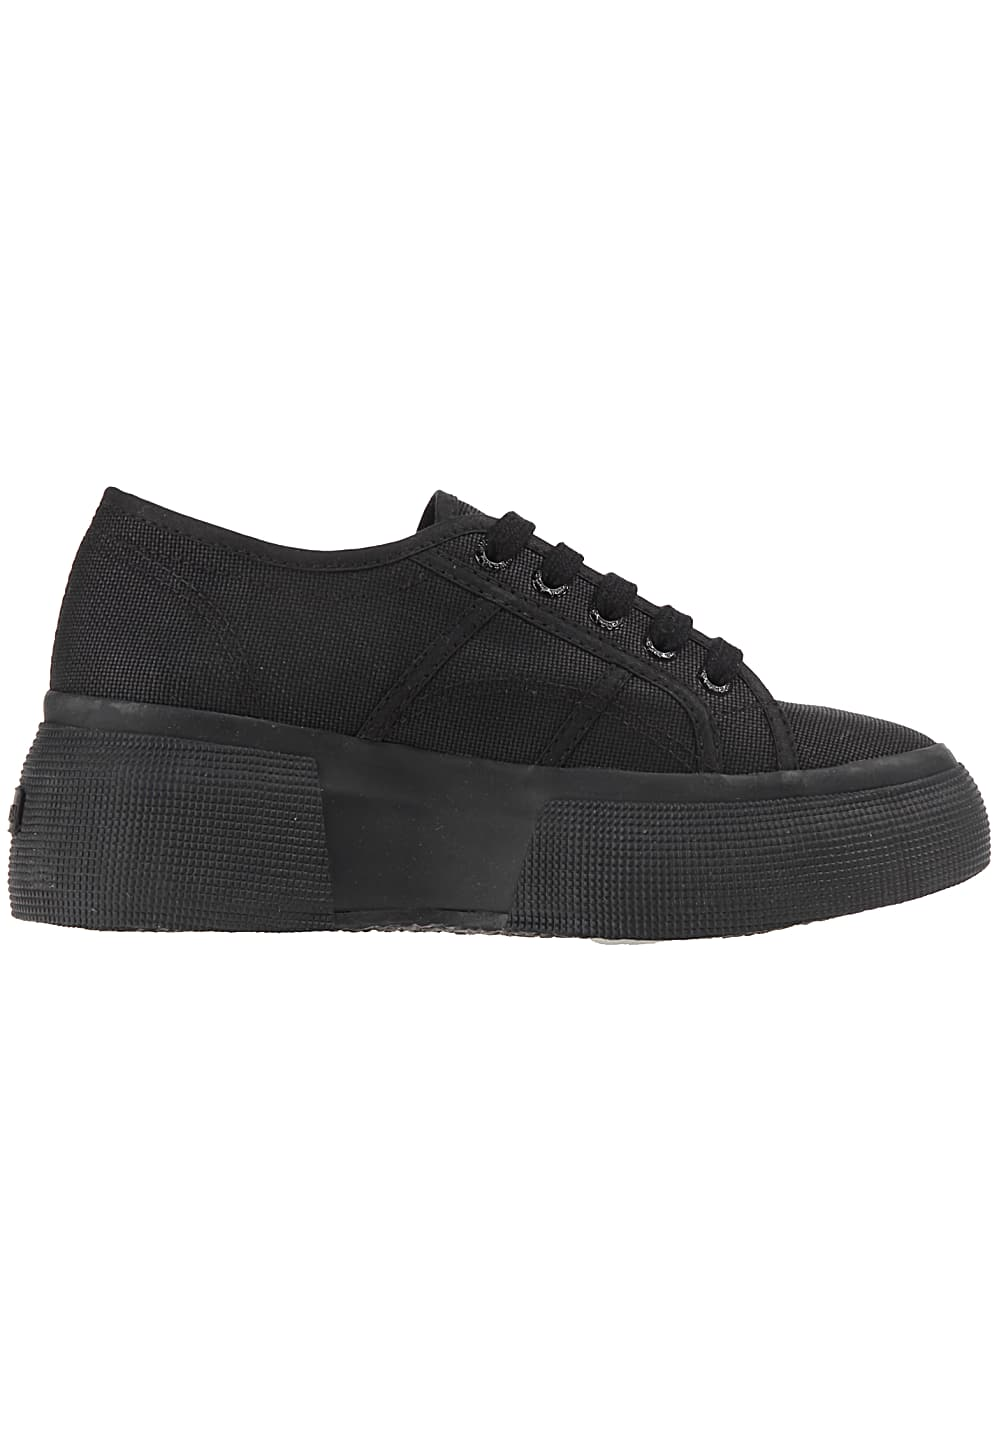 8124868a2a58 SUPERGA 2287 Cotu - Sneakers for Women - Black - Planet Sports